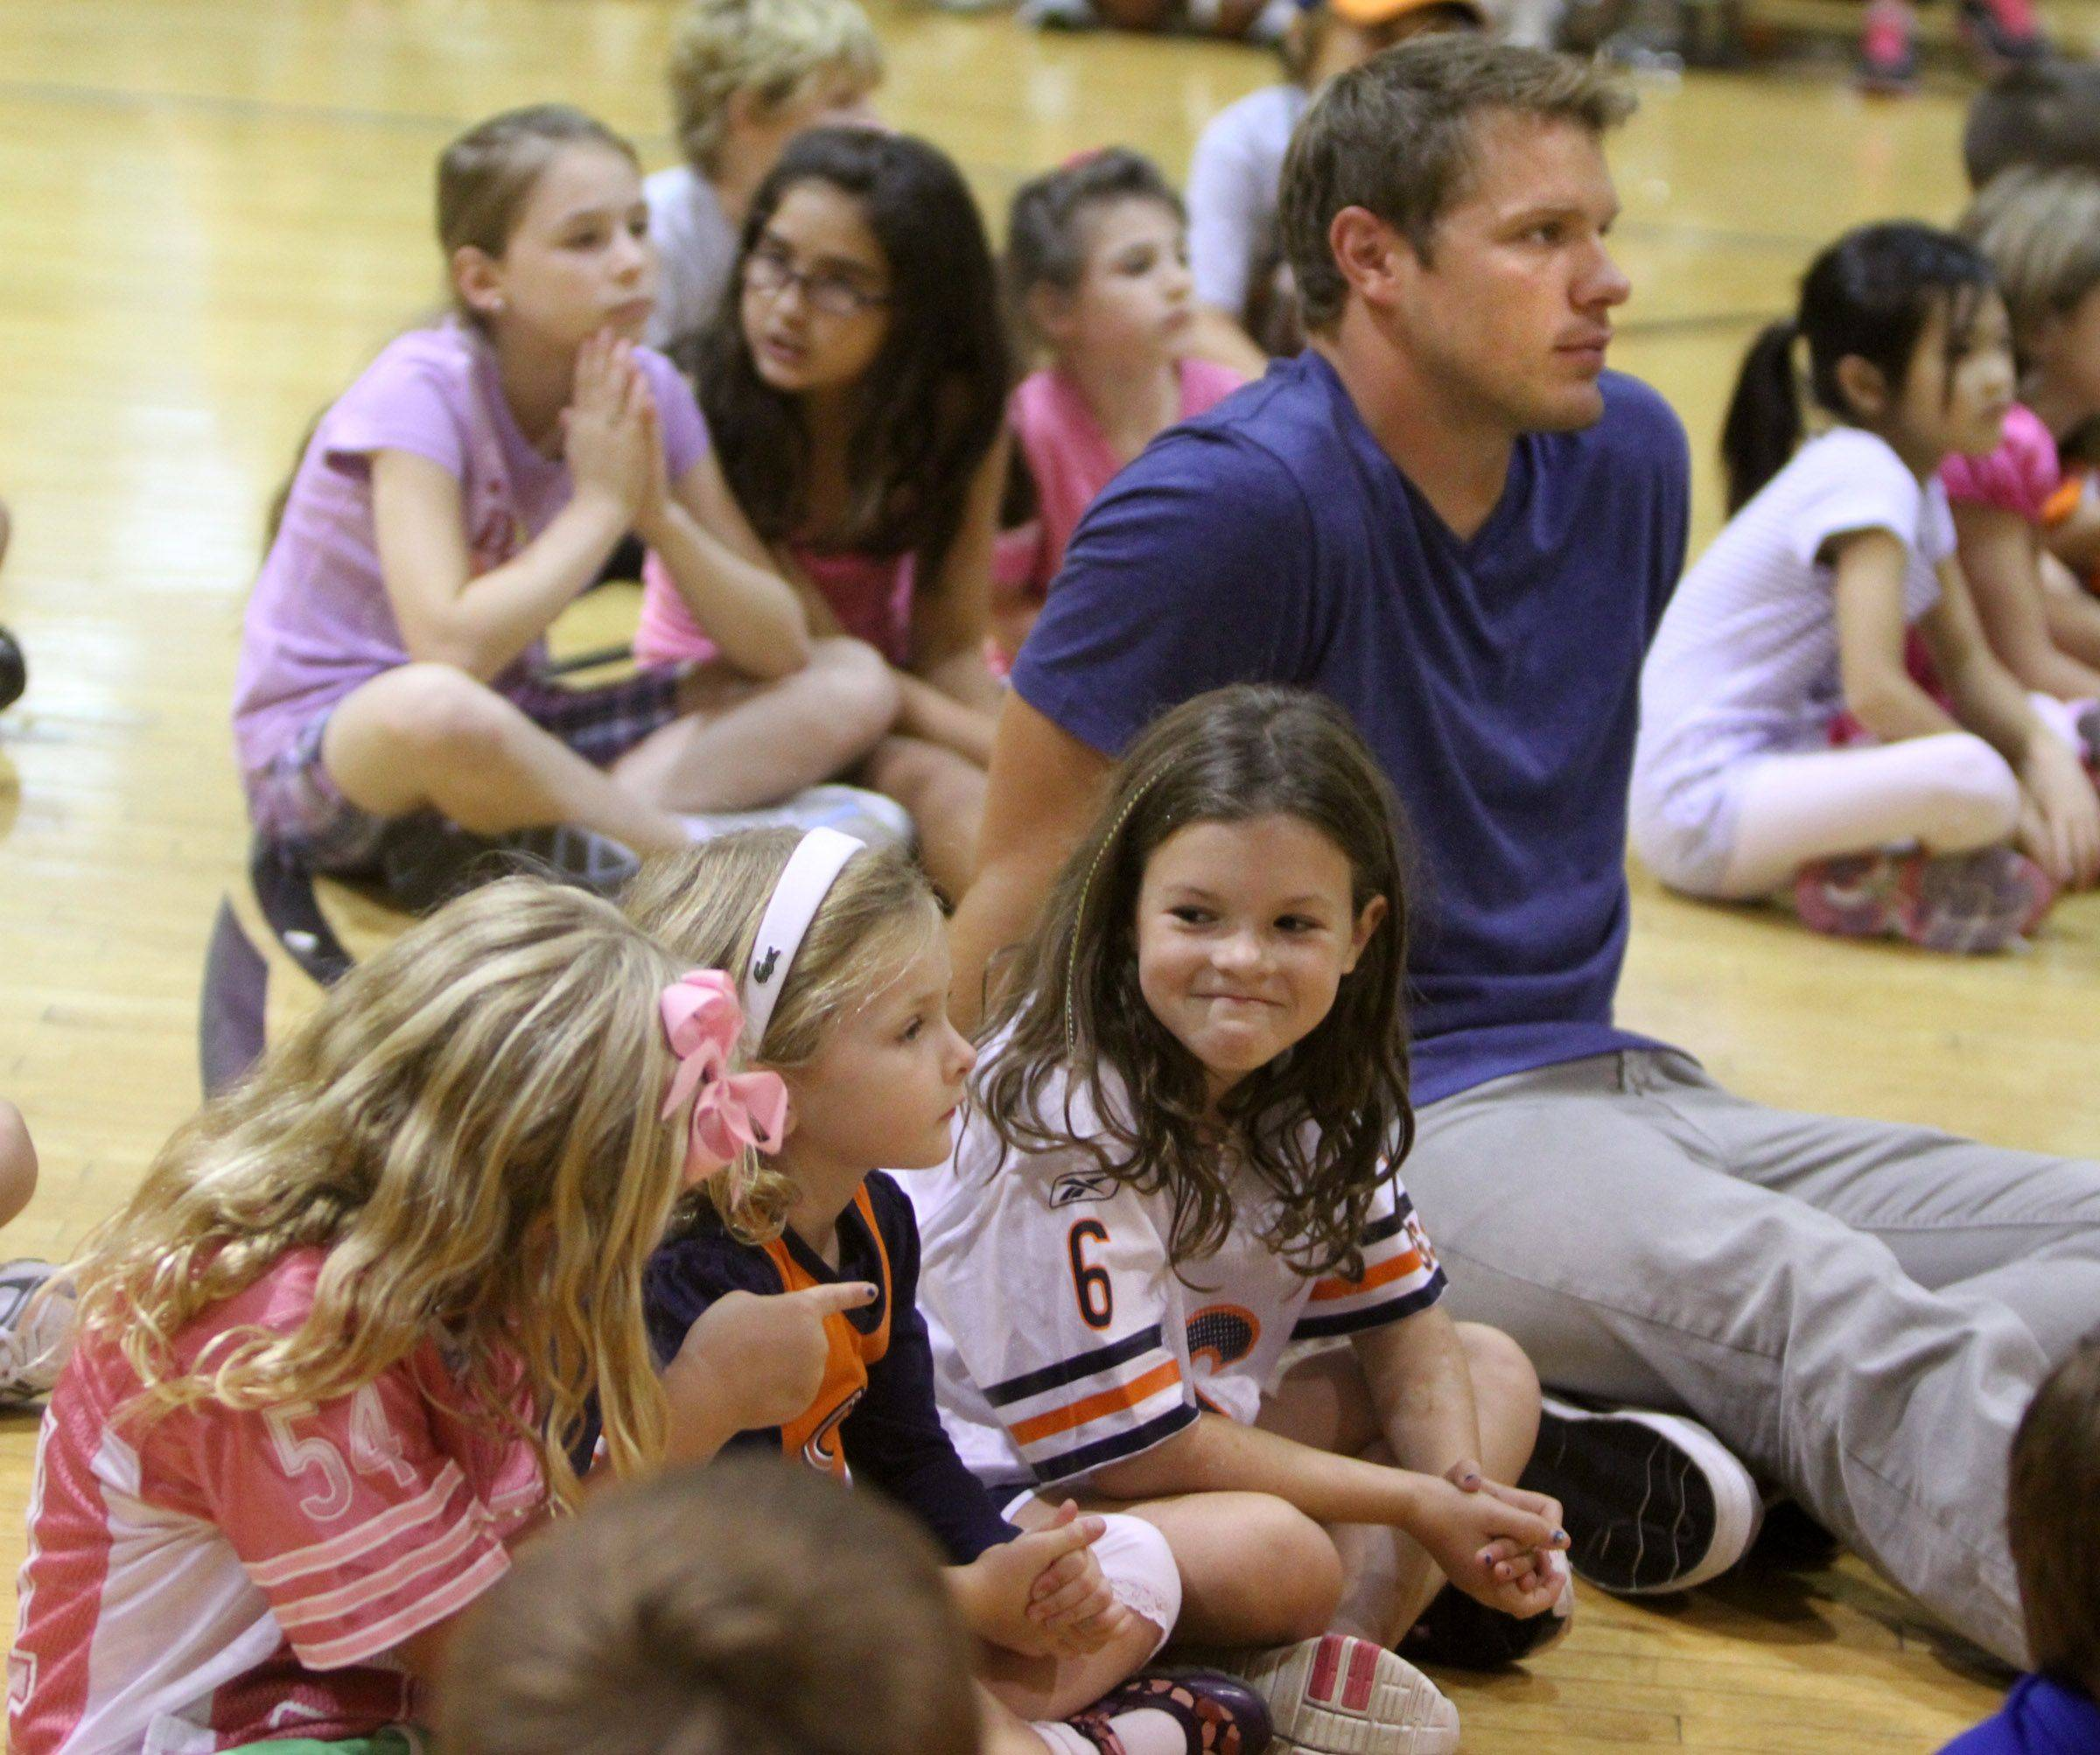 Macy Goodman, 7, wearing a Jay Cutler jersey, is all smiles as her friend Cameran Mather, 7, points out that Macy is sitting next to the Bears' Caleb Hanie during a clinic on nutrition and staying active Tuesday at Midtown Athletic Club in Palatine.